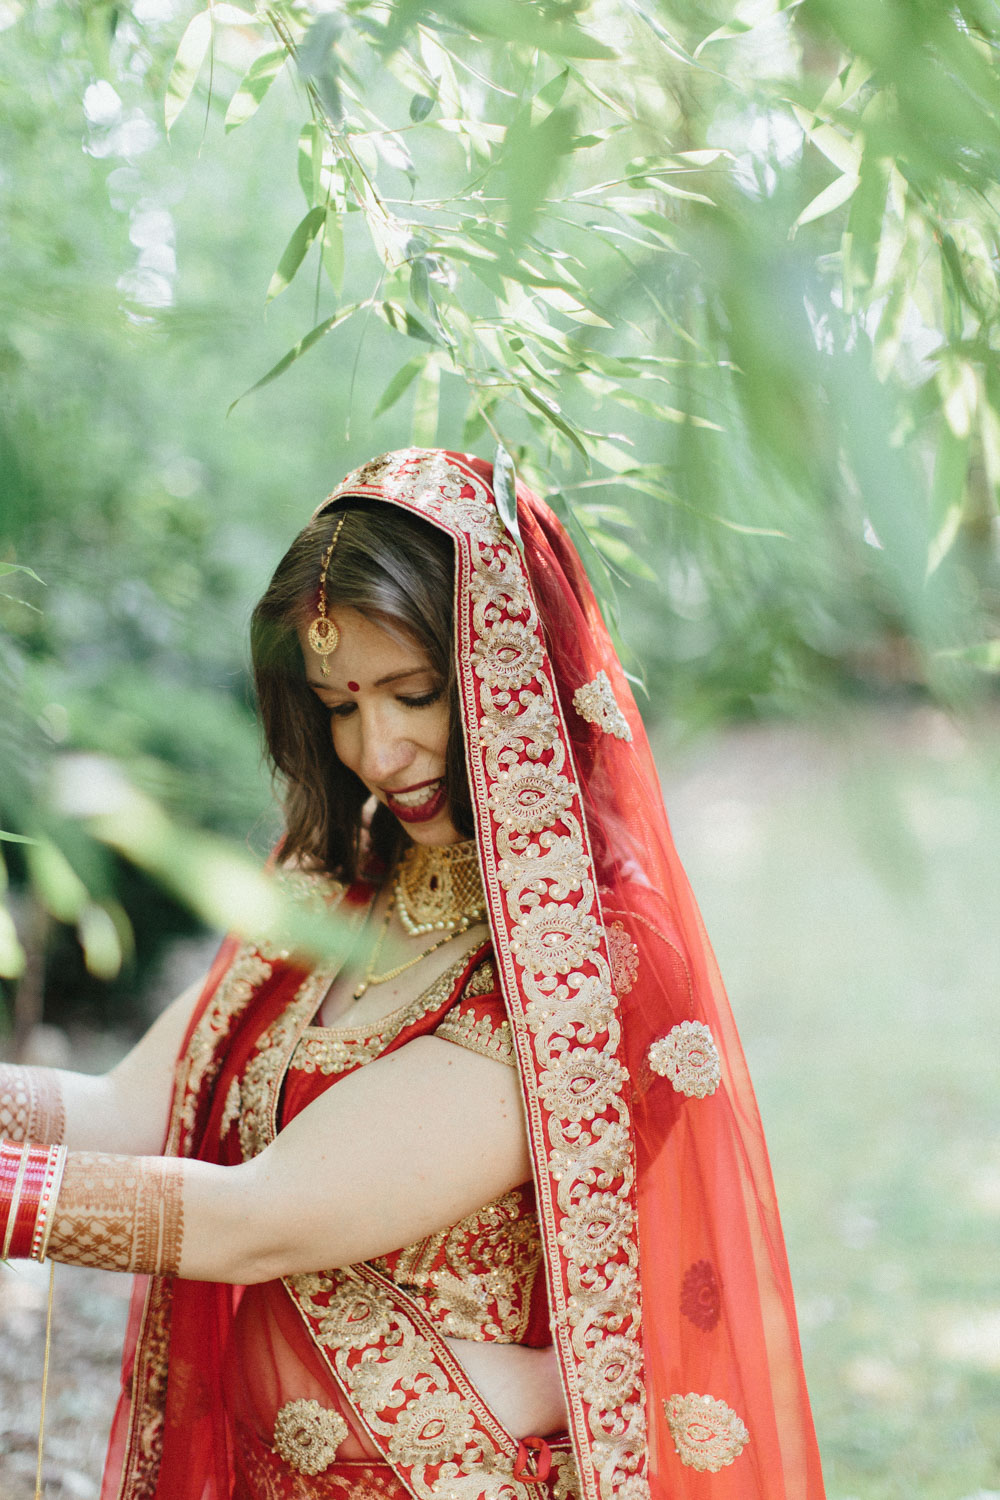 backyard_indian_wedding_roswell_atlanta_georgia_wedding_photographers-481.jpg